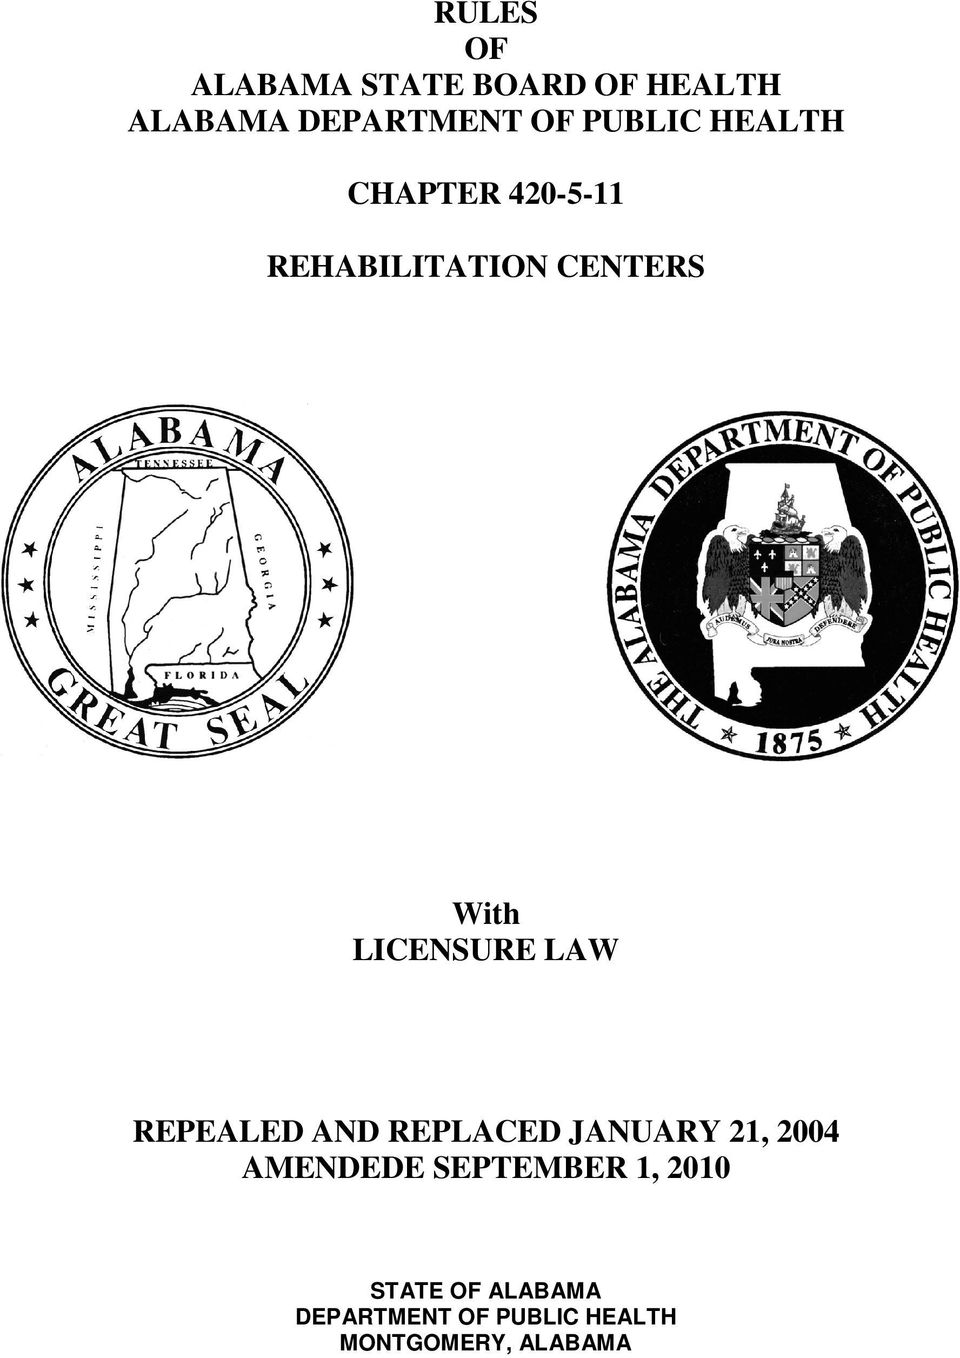 LICENSURE LAW REPEALED AND REPLACED JANUARY 21, 2004 AMENDEDE